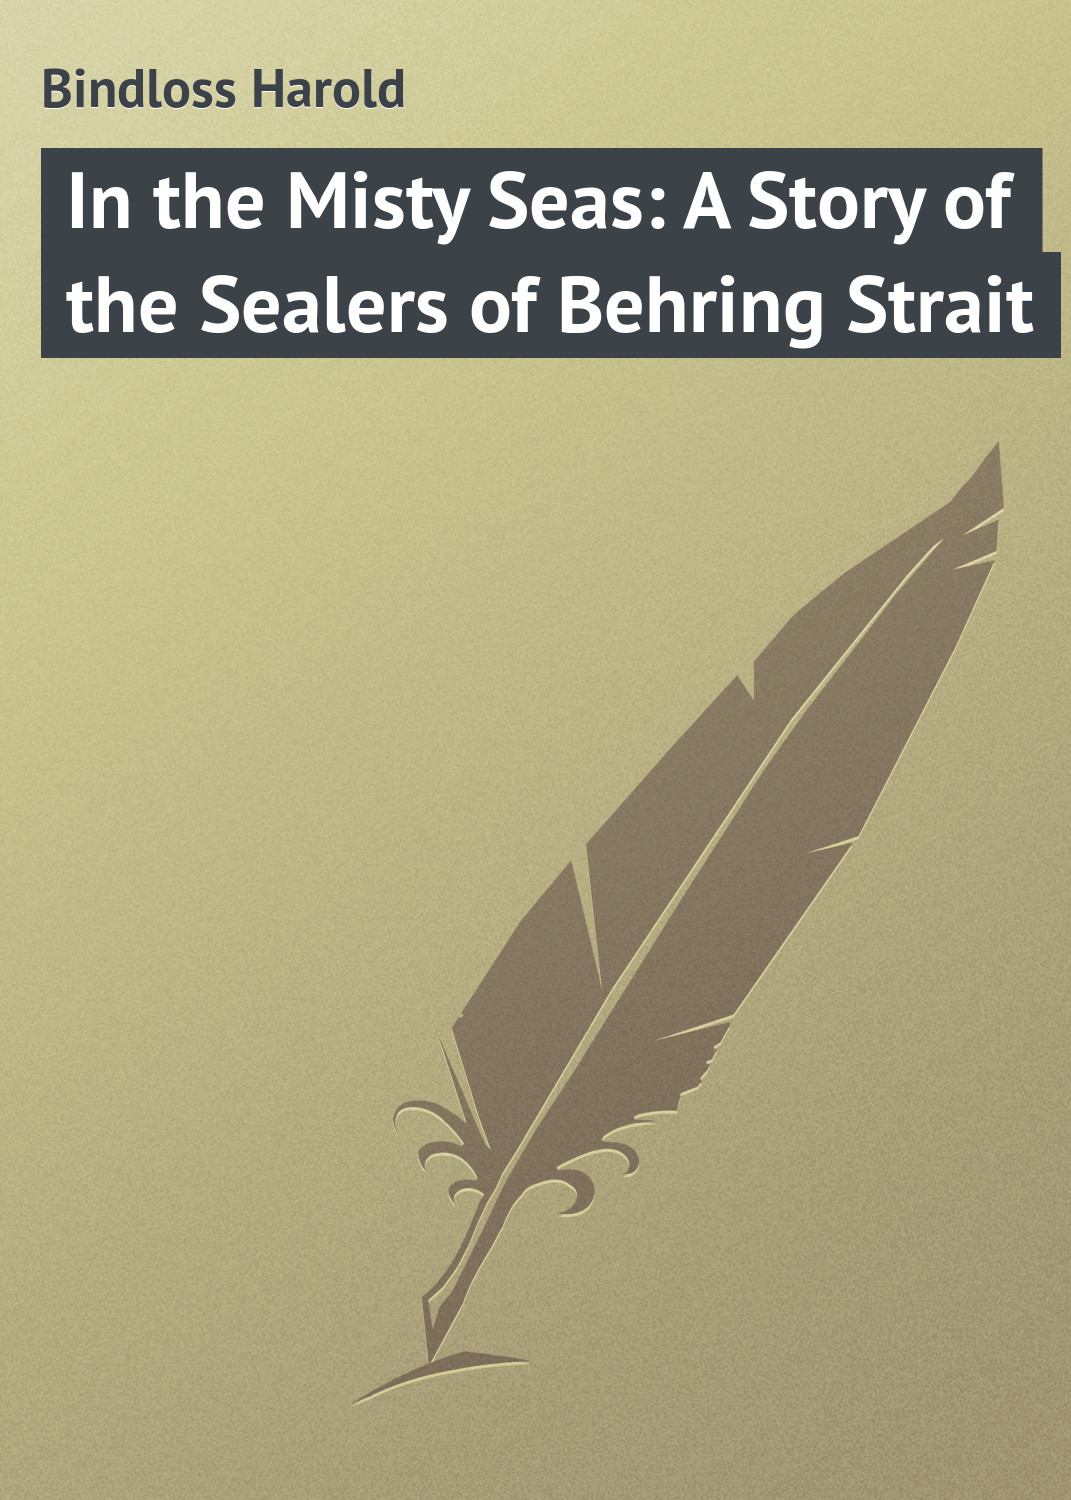 Bindloss Harold In the Misty Seas: A Story of the Sealers of Behring Strait secrets of the seas